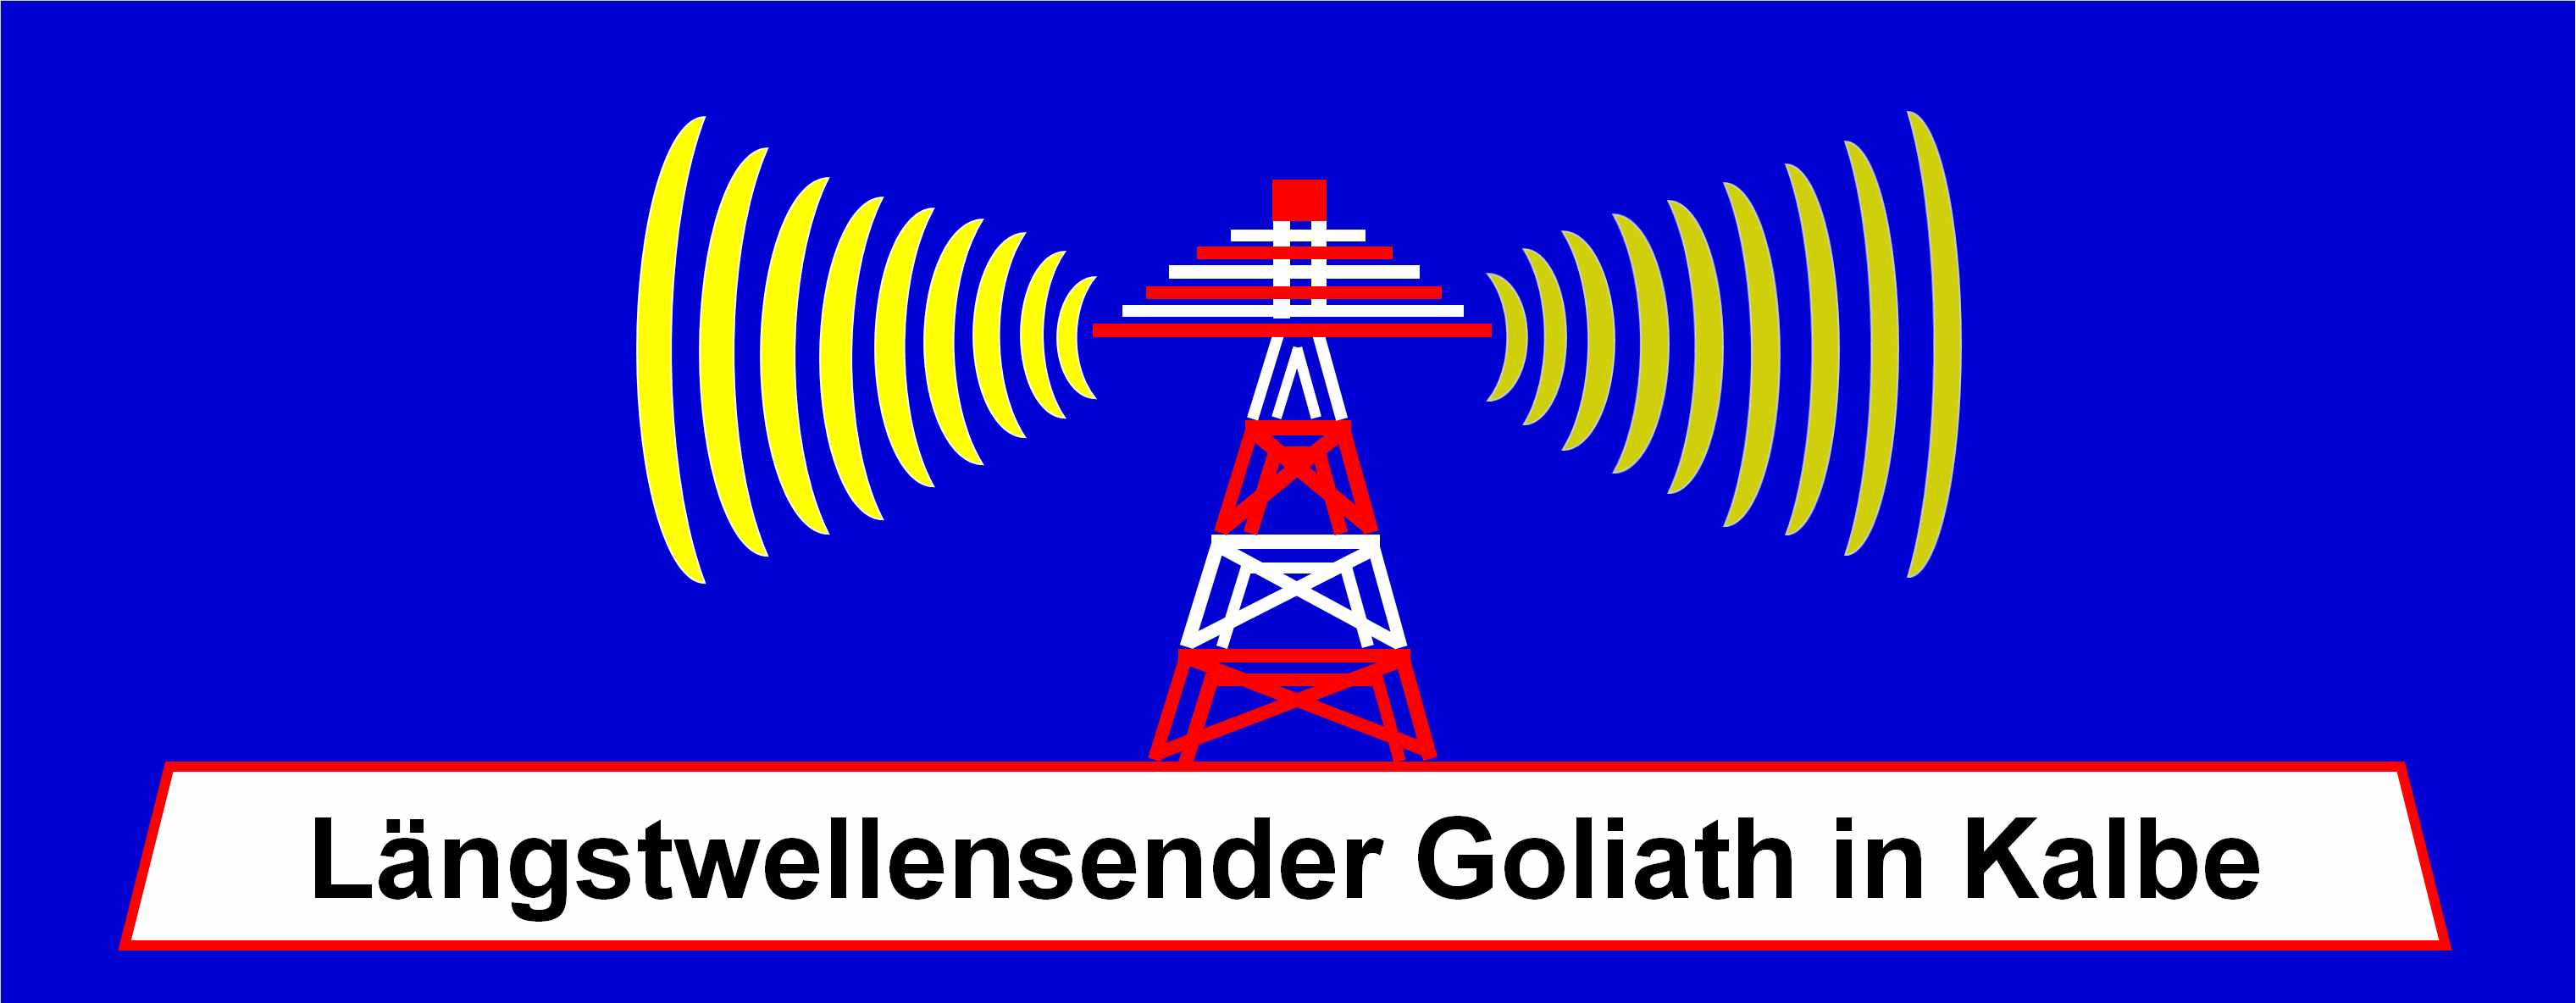 Längstwellensender Goliath in Kalbe